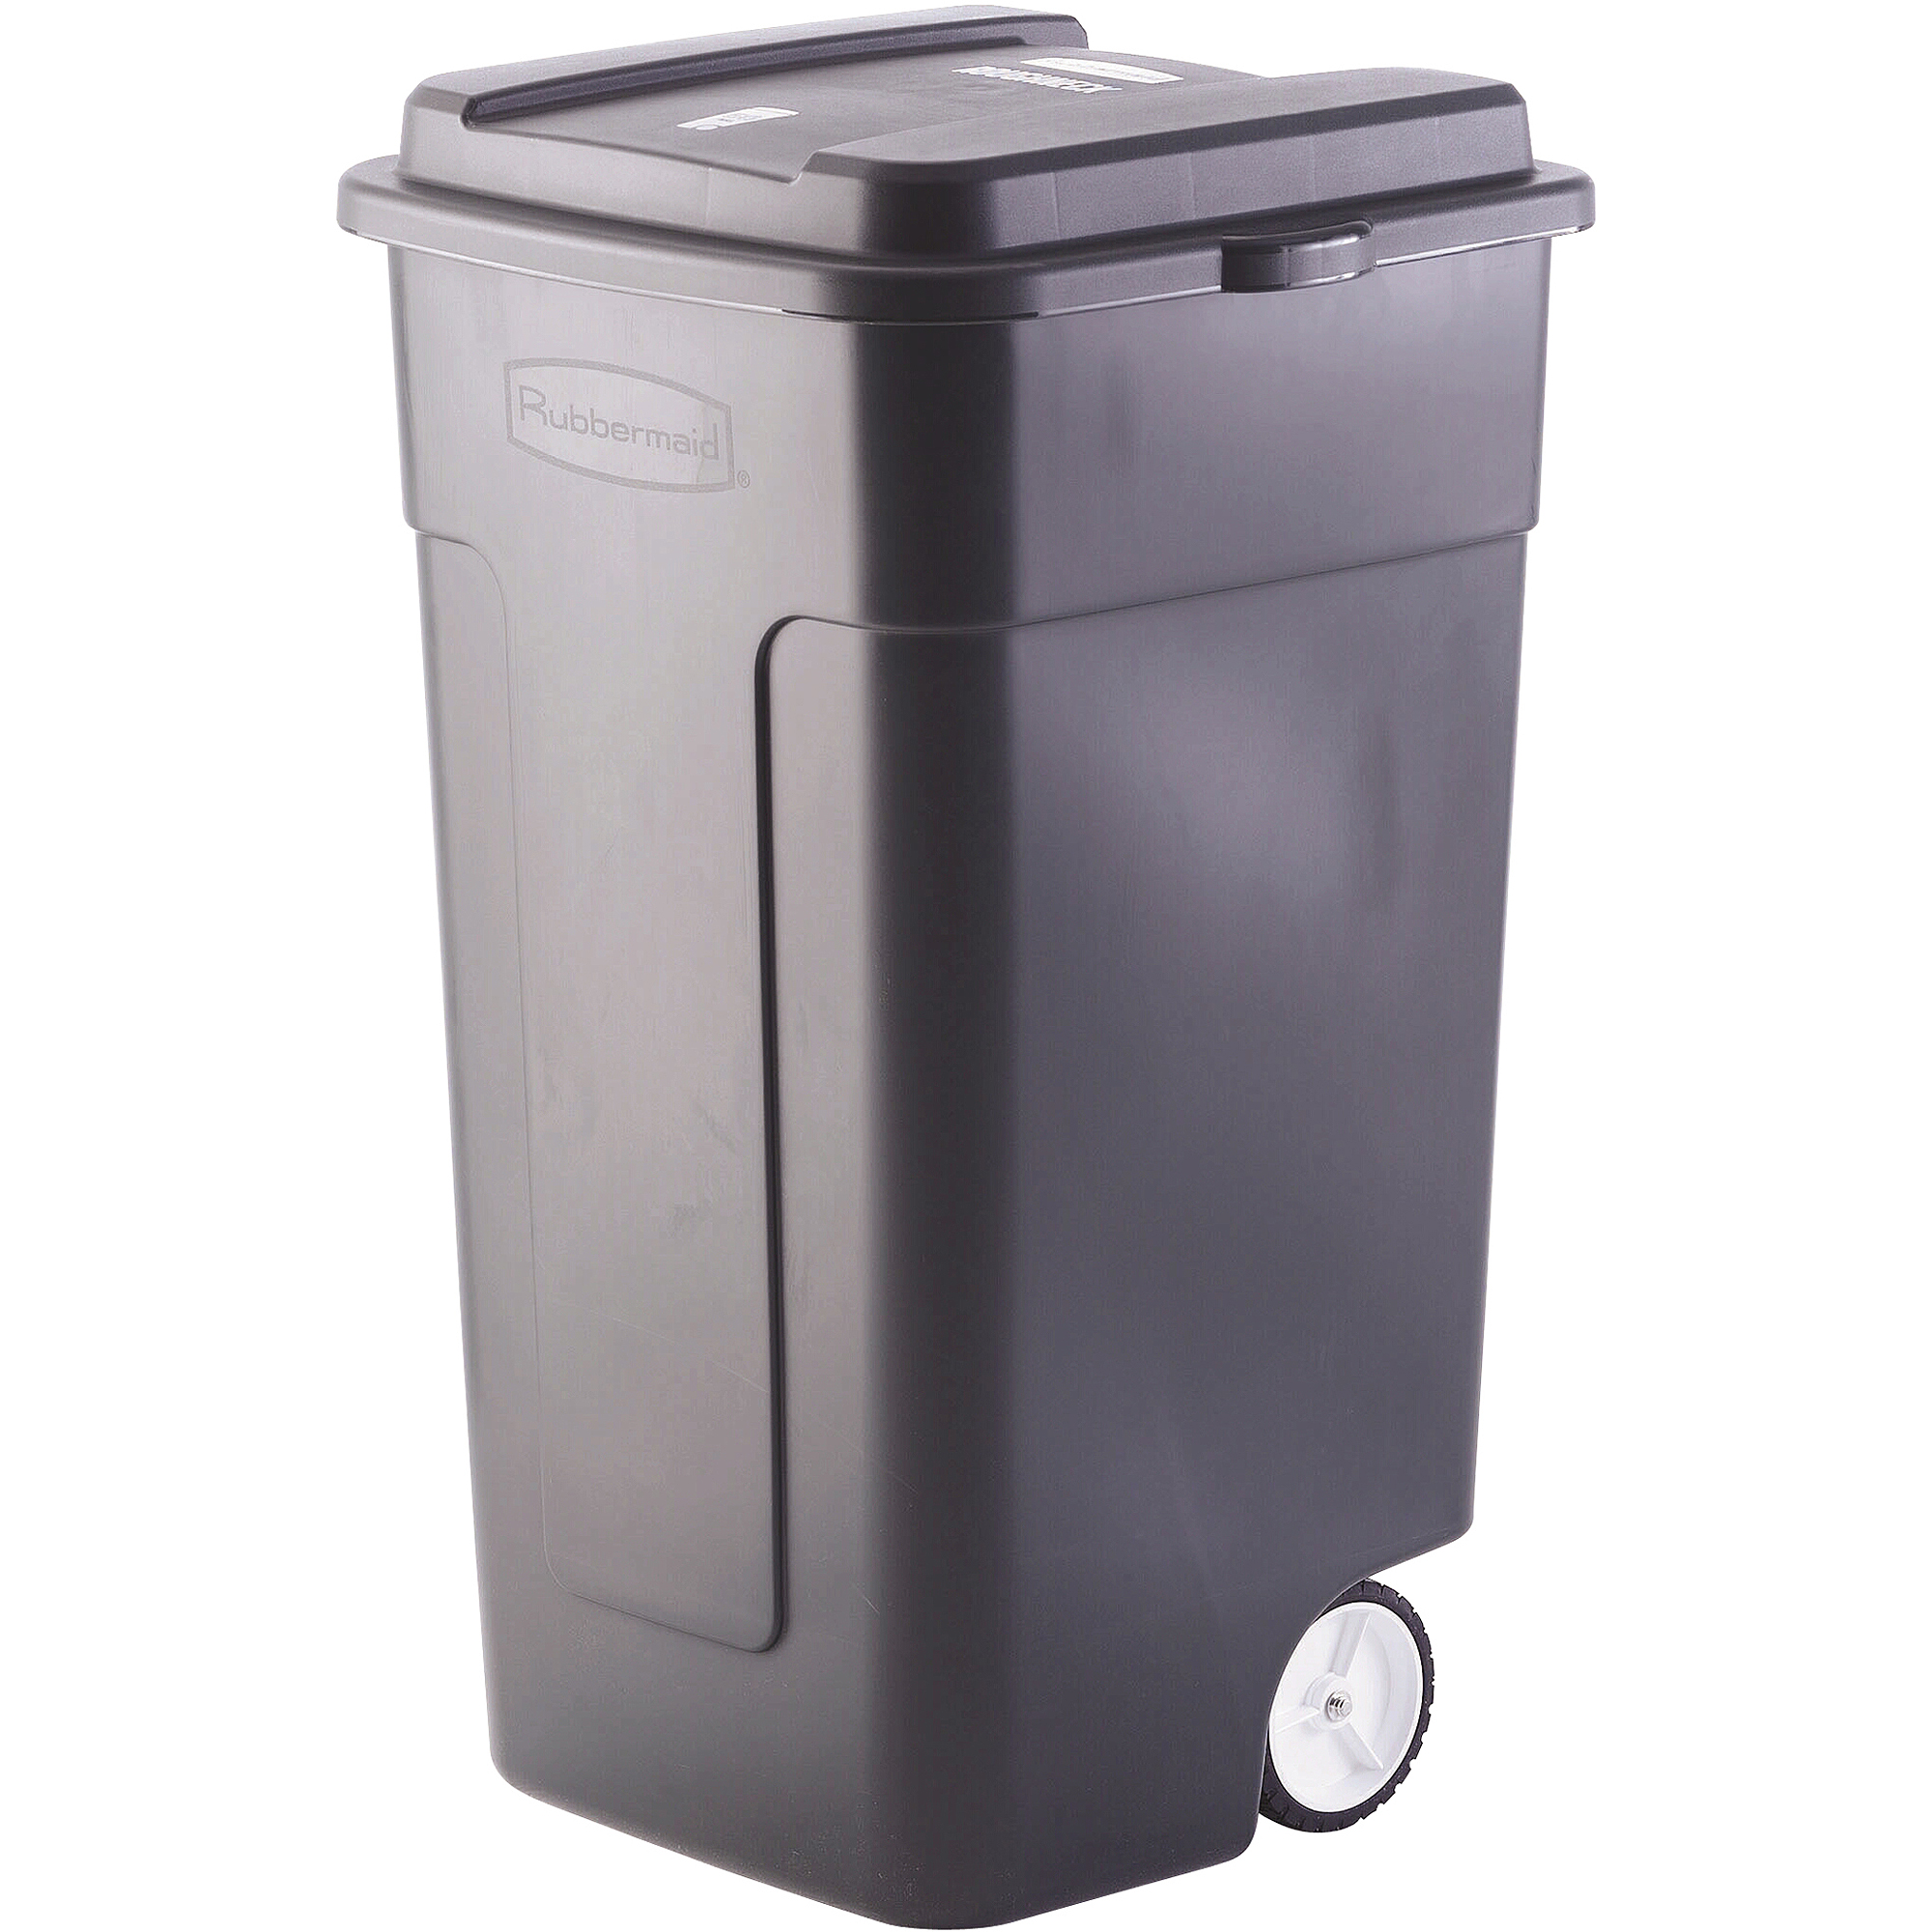 rubbermaid 50-gallon wheeled roughneck trashcan, black - walmart